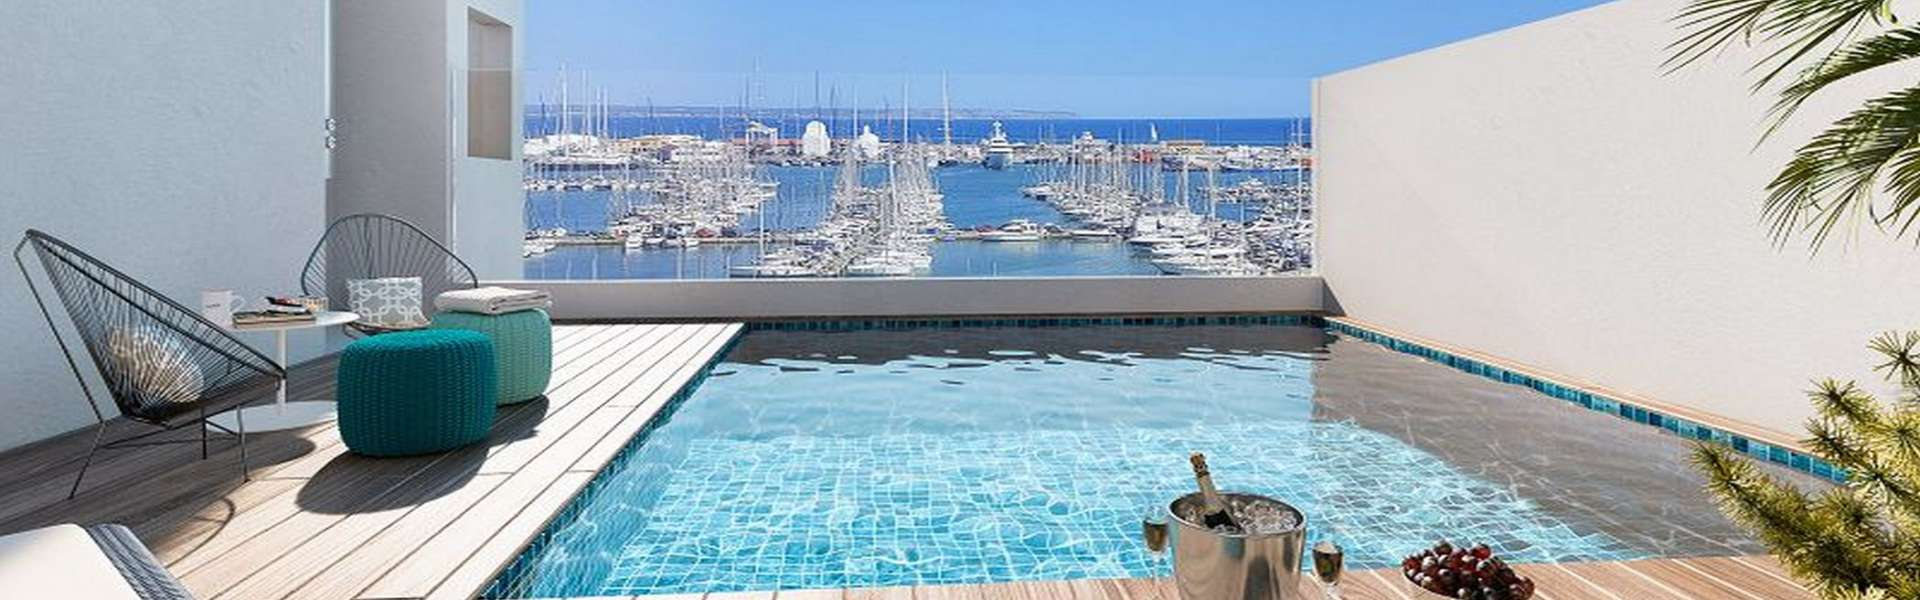 Palma/Son Armadams - Apartments/penthouses in central location and beautiful views